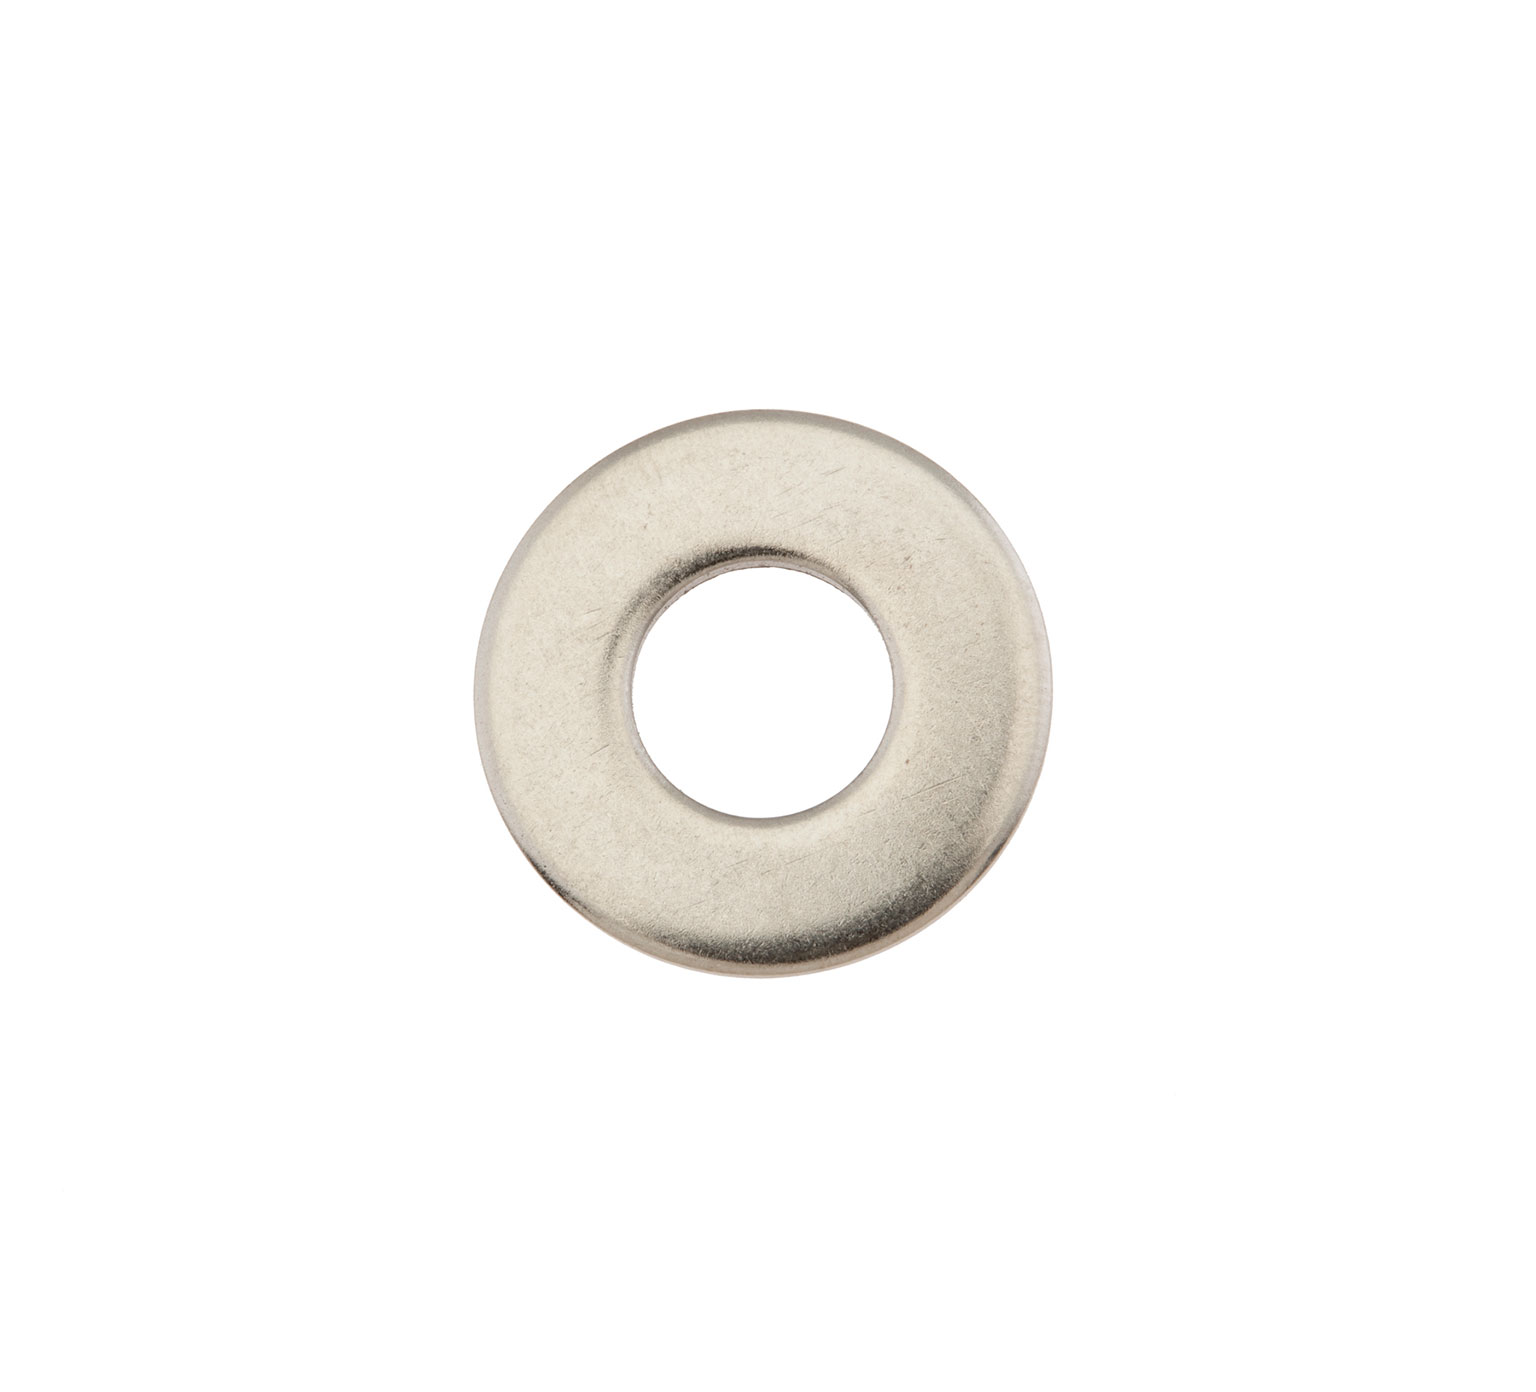 01686 Stainless Steel Washer - 0.438 ID x 1 OD x 0.83 in alt 1